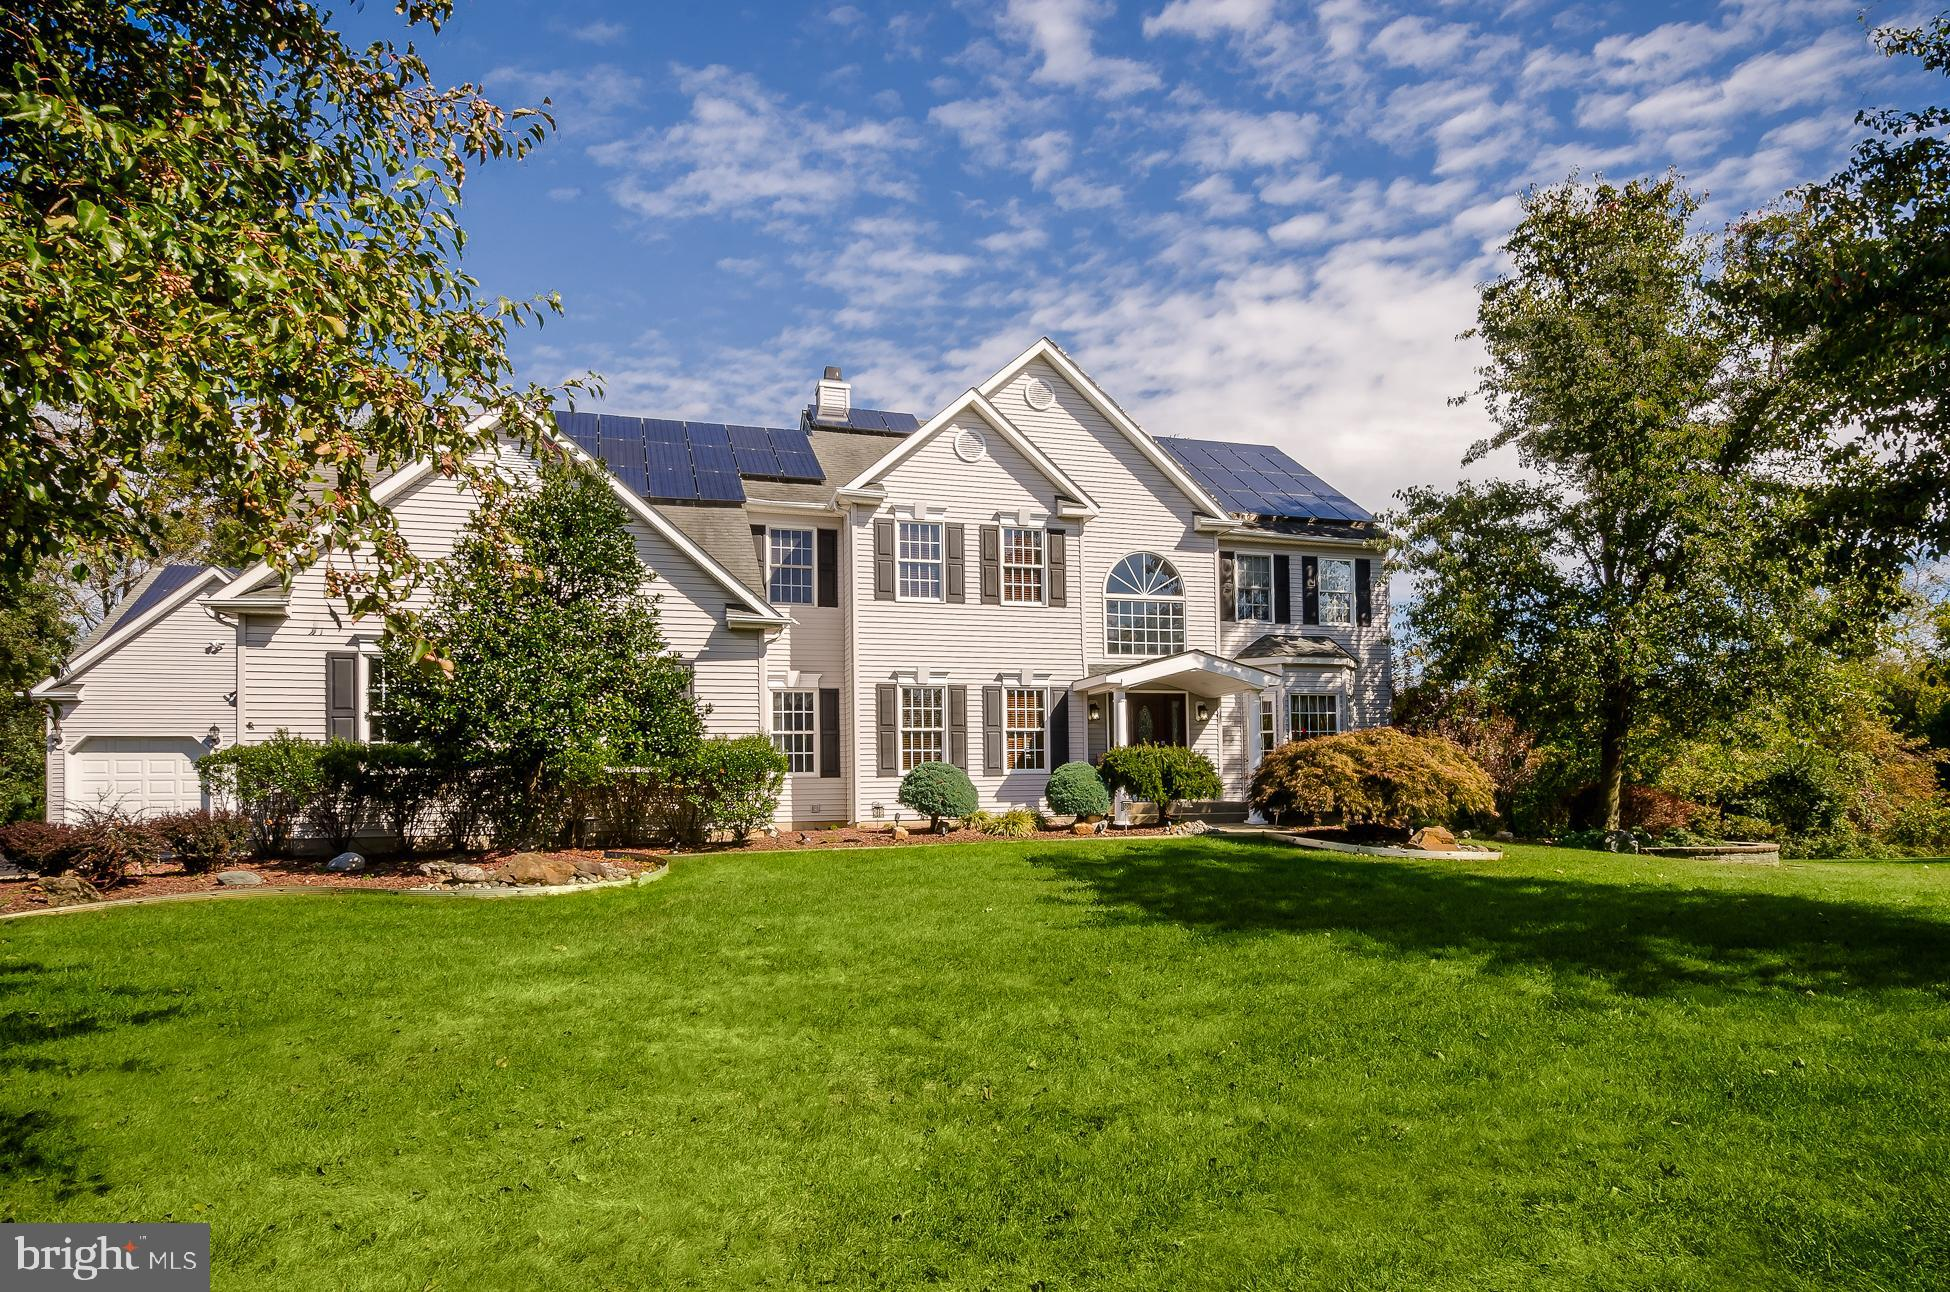 34 ANDERSON WAY, MONMOUTH JUNCTION, NJ 08852